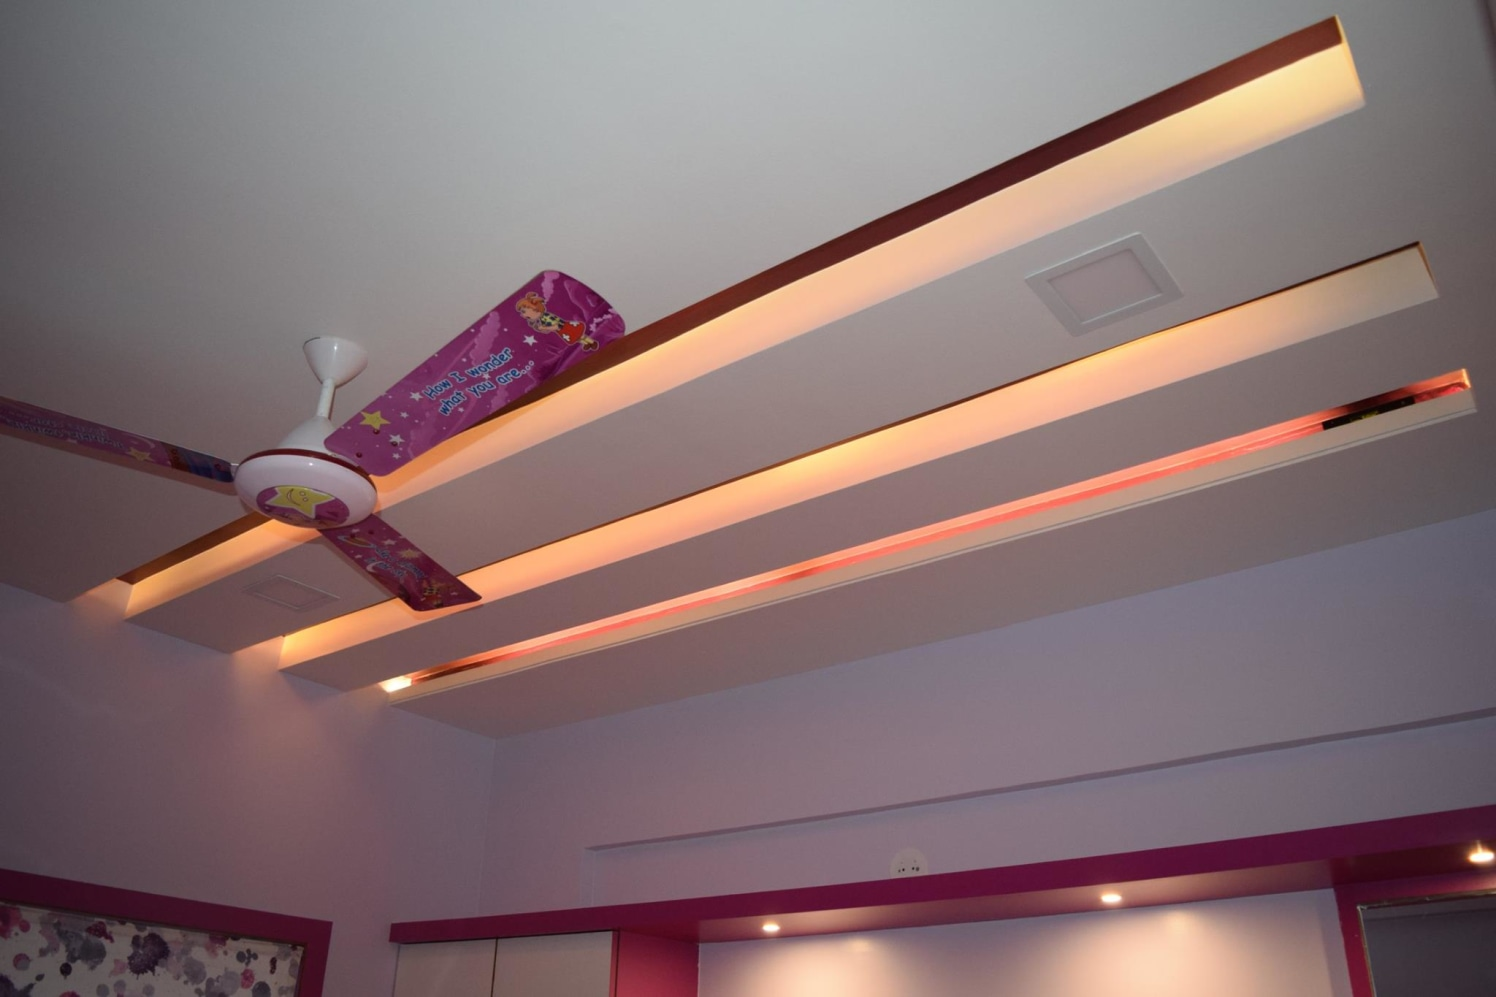 False ceiling With Acsent Lighting by color's interio Contemporary | Interior Design Photos & Ideas